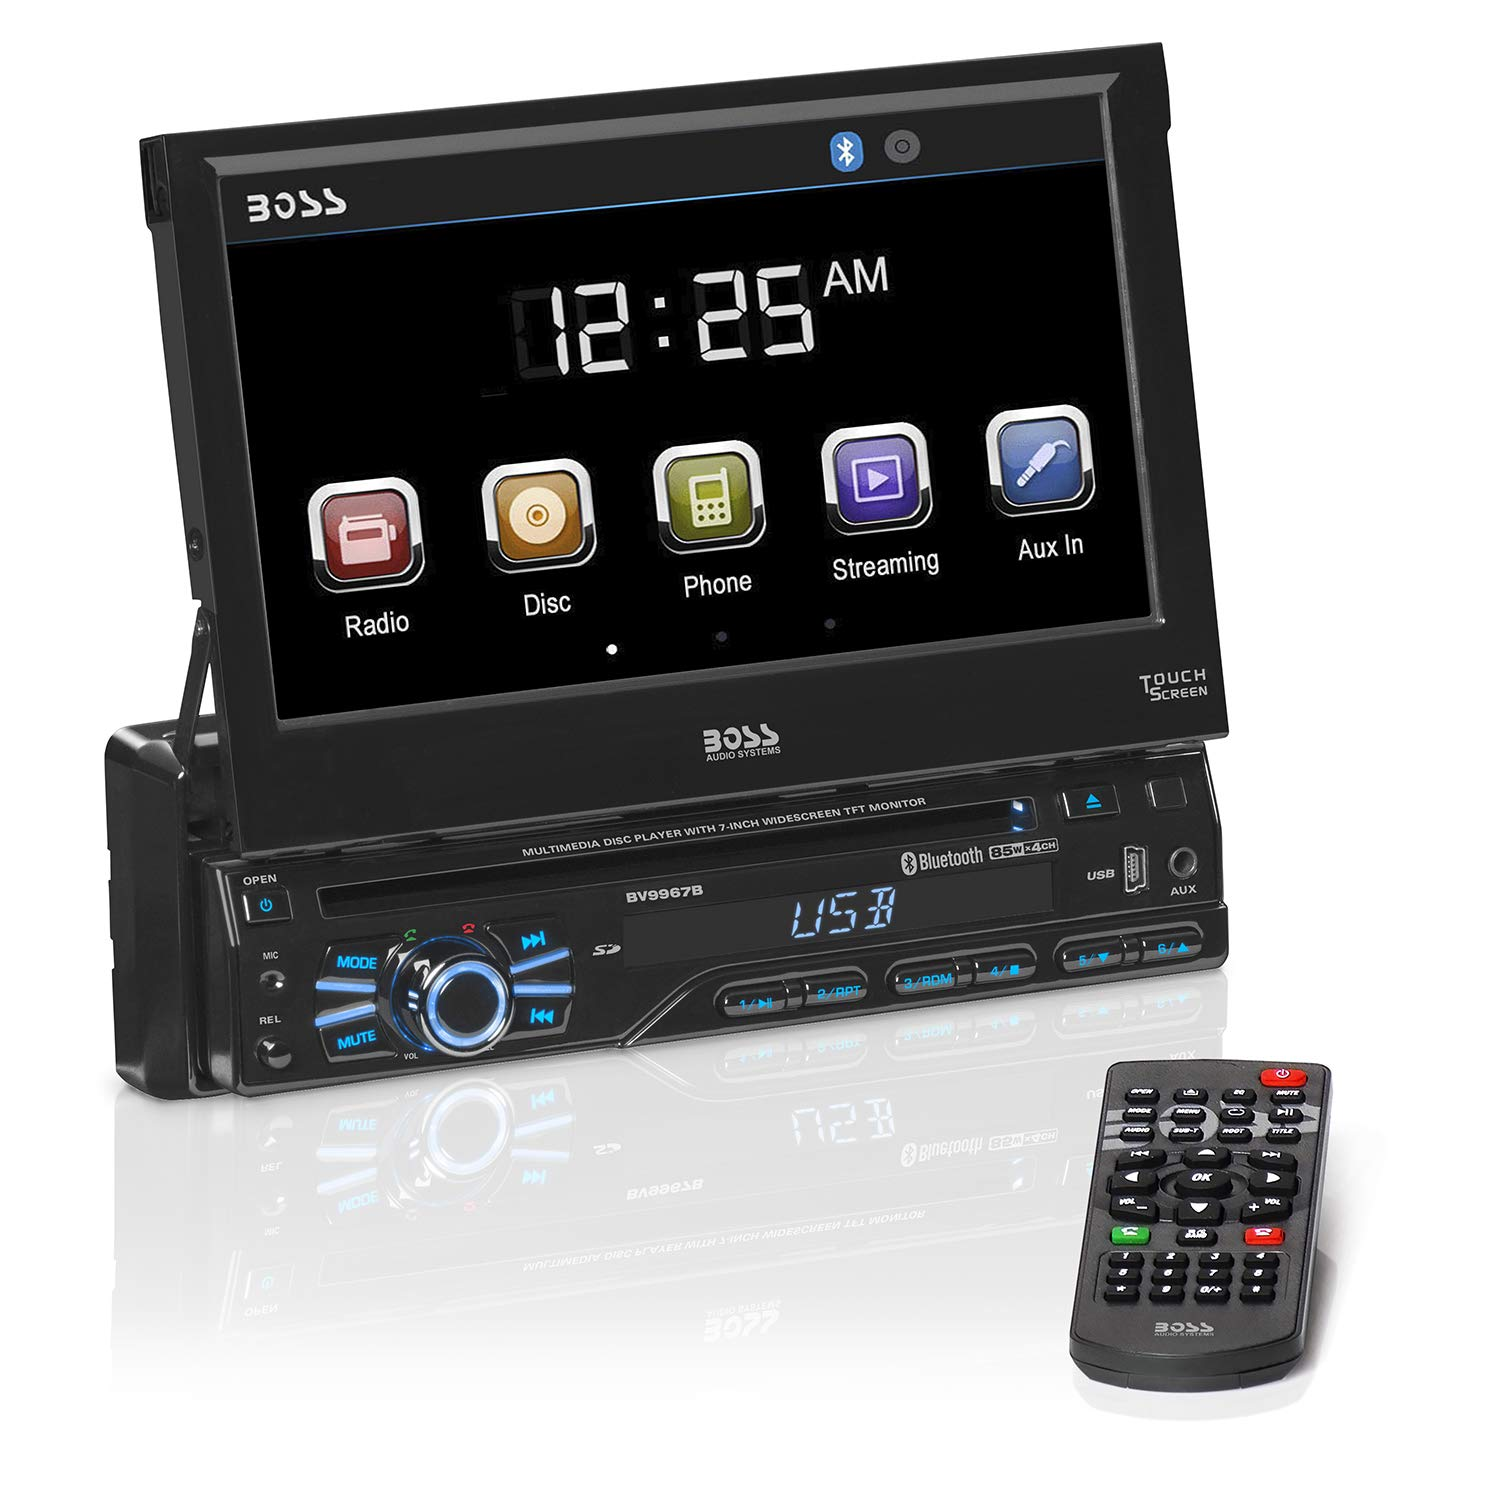 BOSS Audio Systems BV9967B Single Din, Touchscreen, Bluetooth, DVD CD MP3 USB SD AM FM Car Stereo, 7 Inch Digital LCD Monitor, Detachable Front Panel, Wireless Remote by BOSS Audio Systems